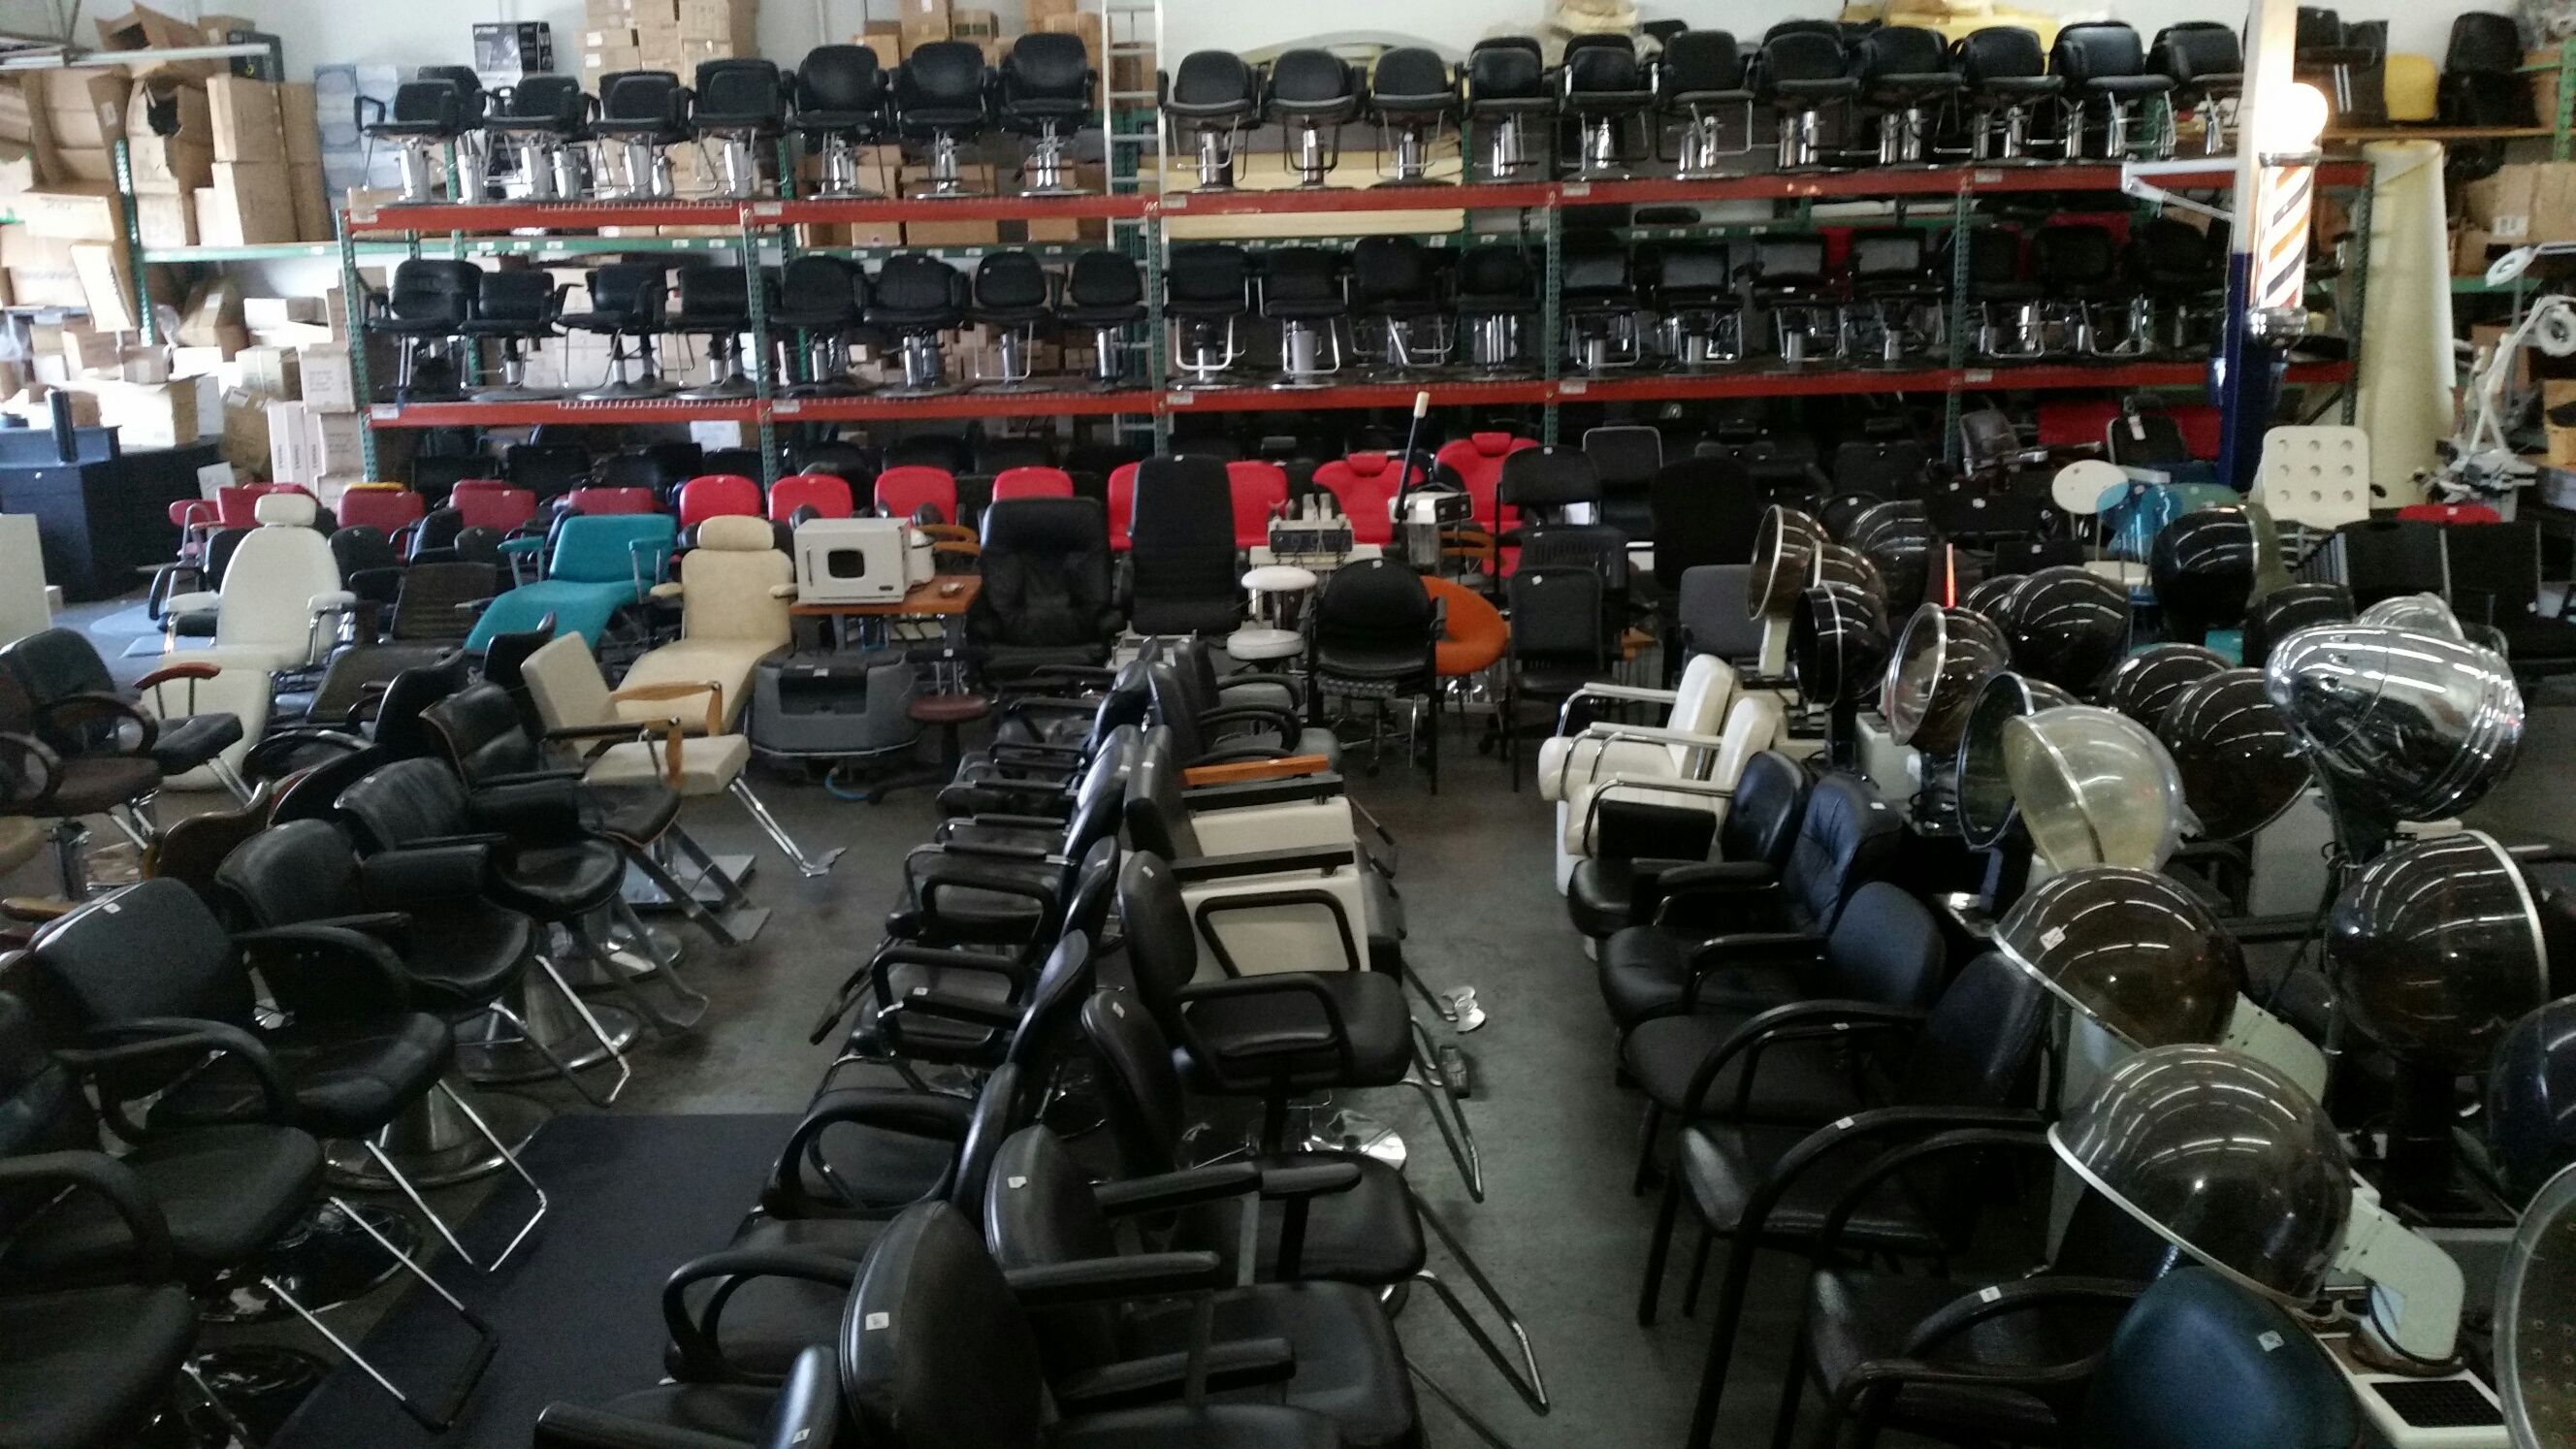 We have hundreds of used hydraulic styling chairs as well as